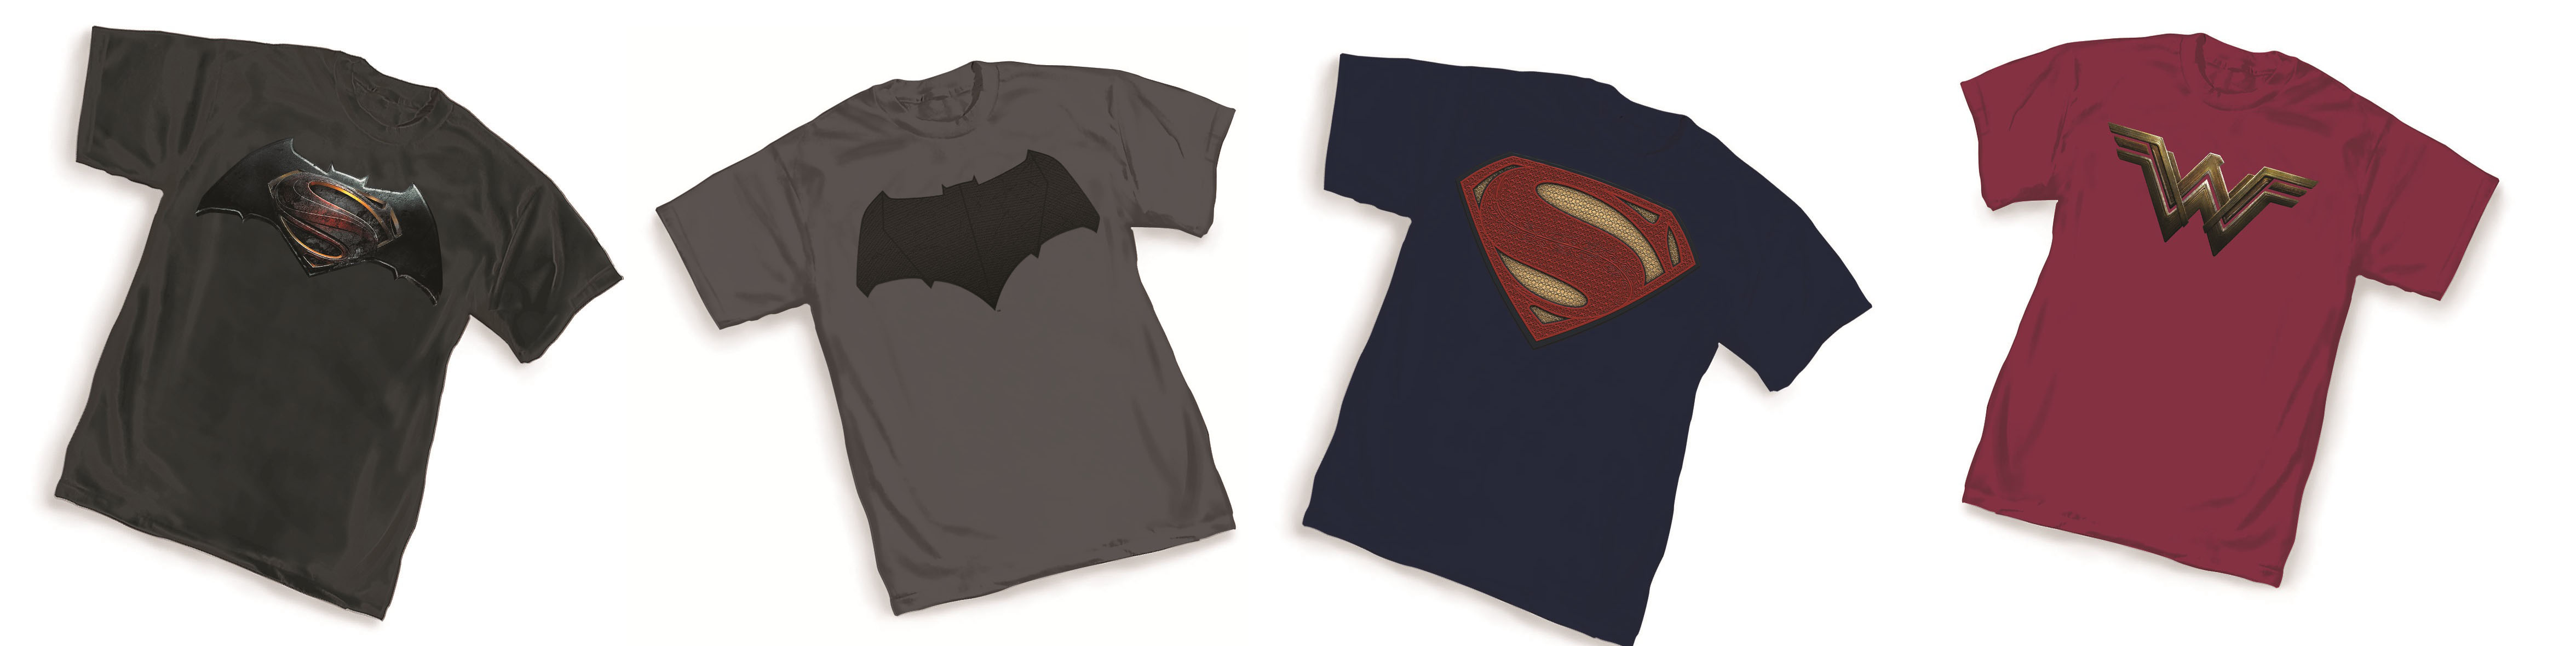 Batman v Superman movie t-shirts